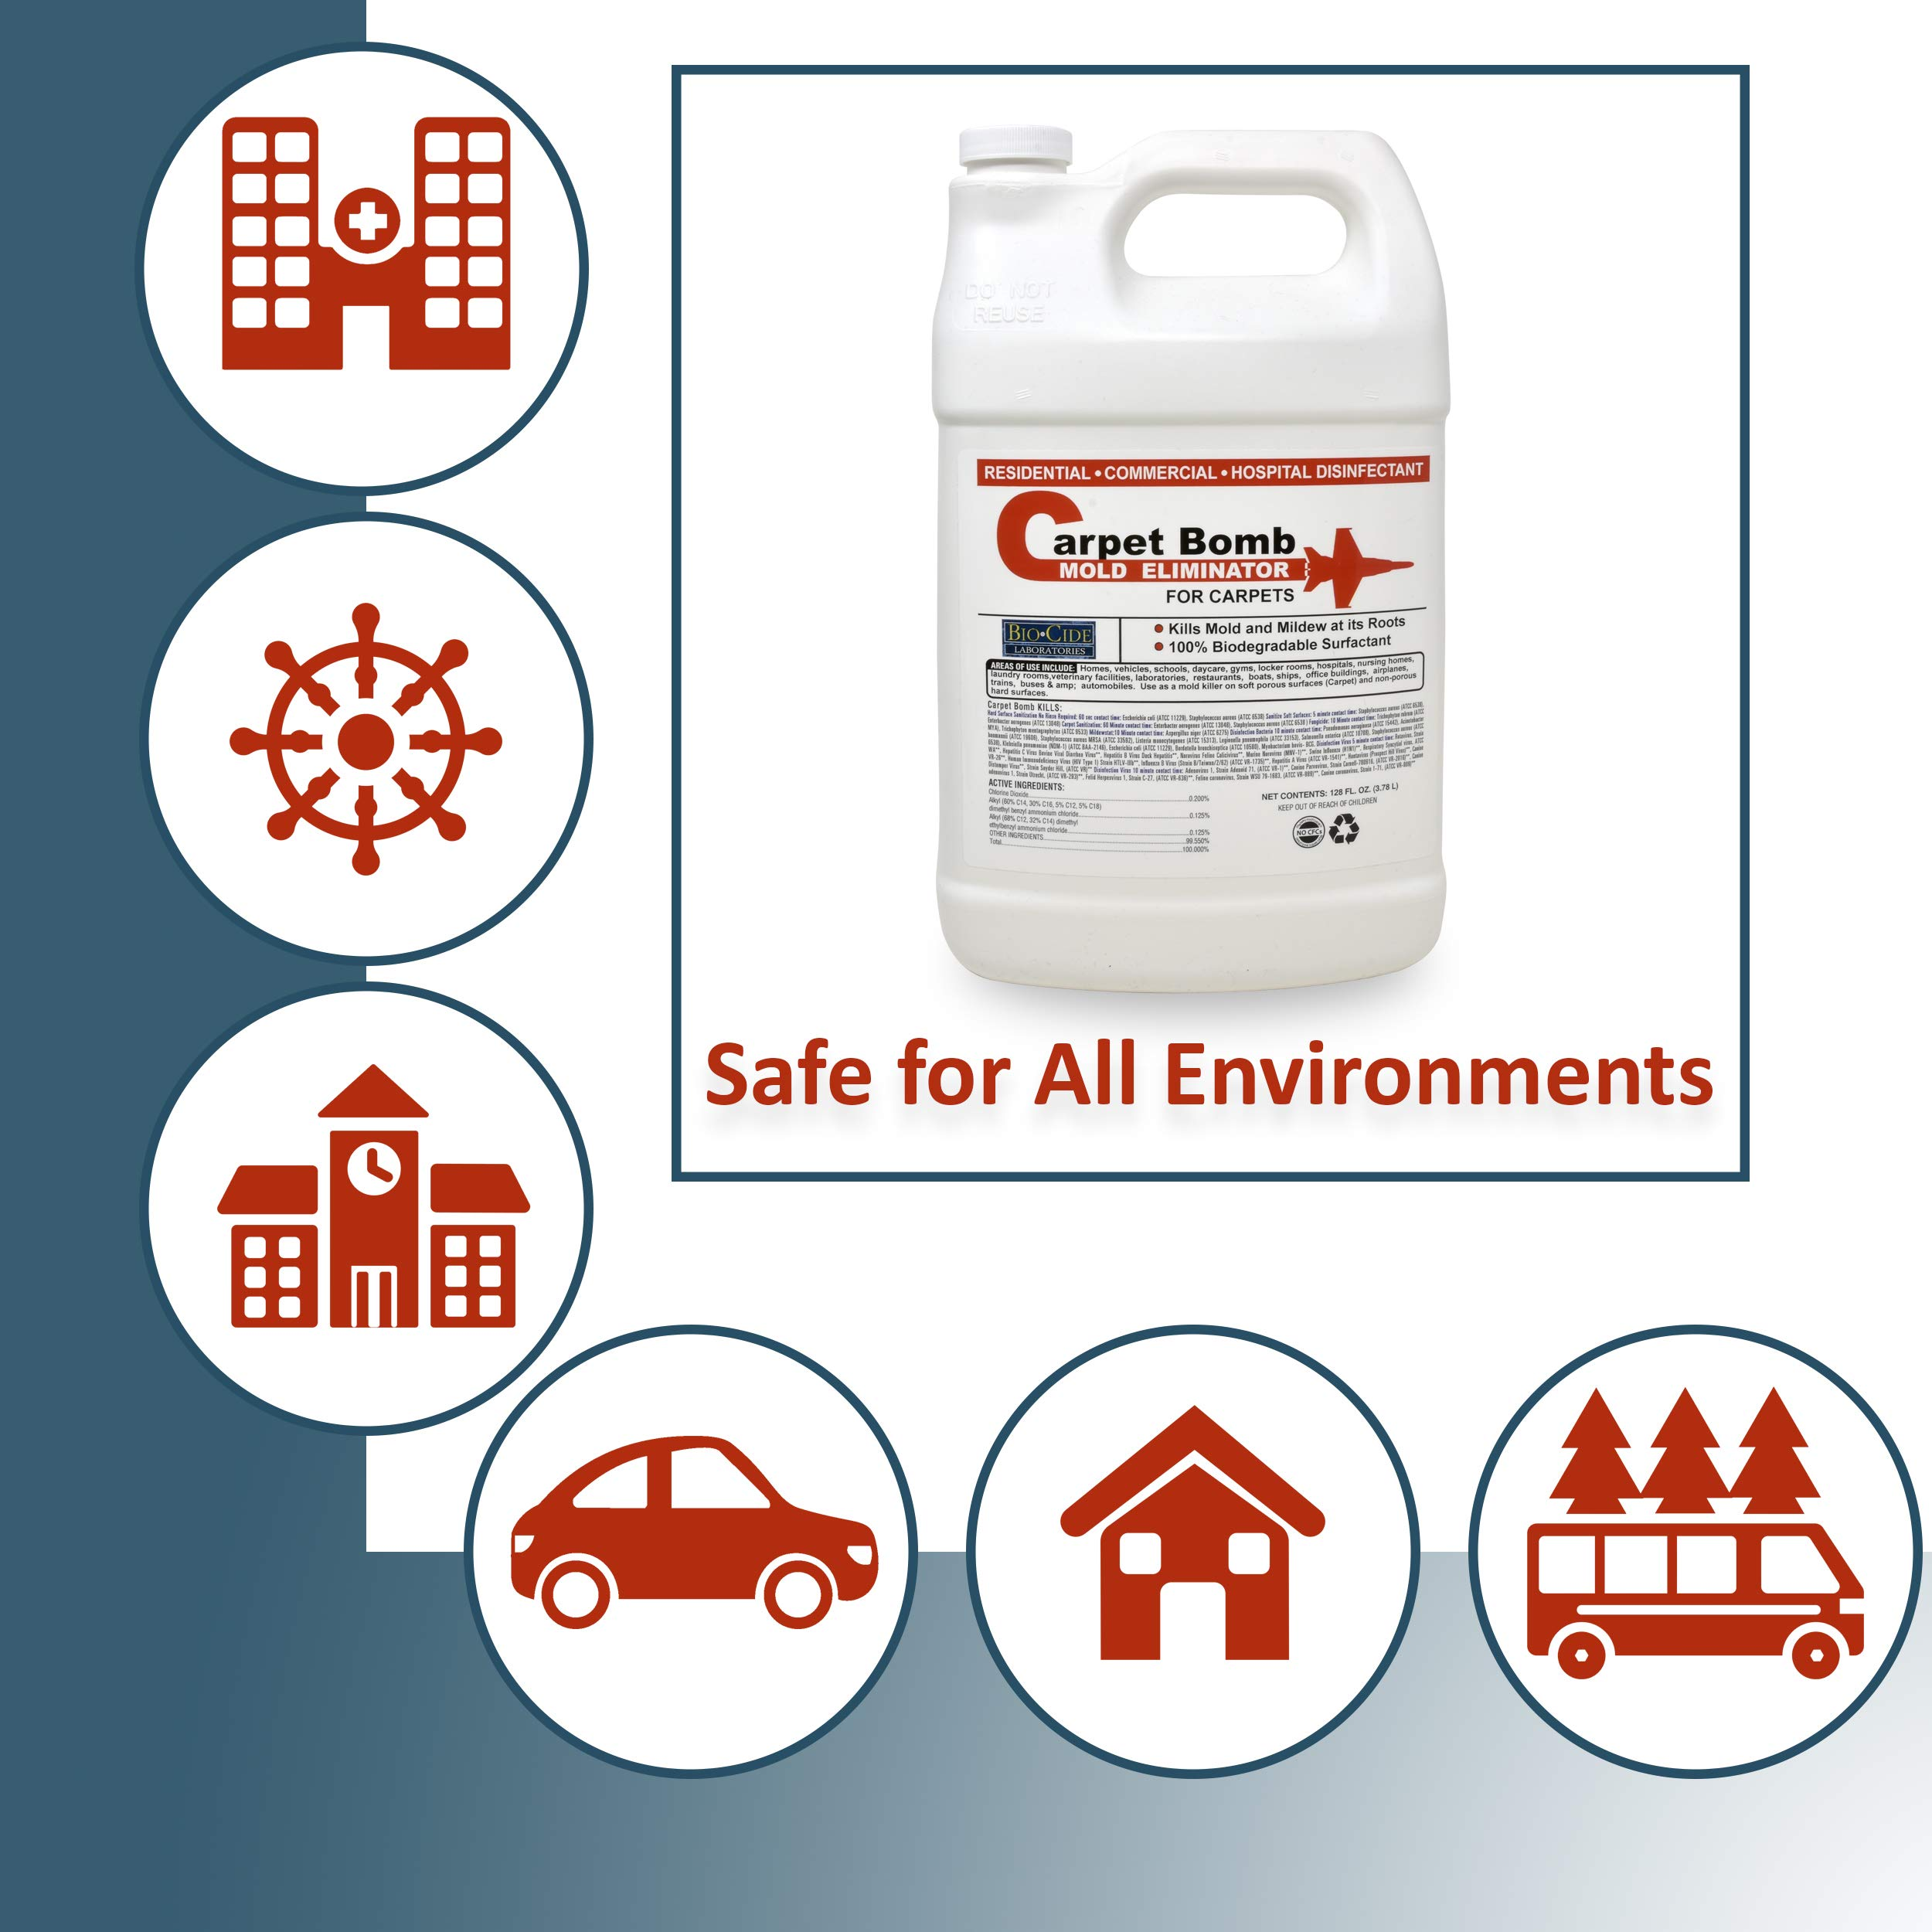 Biocide Carpet Mold Cleaner, Deep Stain and Odor Remover Solution, Mold Killer, Fogger, Deep Cleaner for all Surfaces, Fiber Materials, Rugs, Upholstery Fabric, Compatible with all Carpet Cleaners by Biocide Laboratories (Image #7)